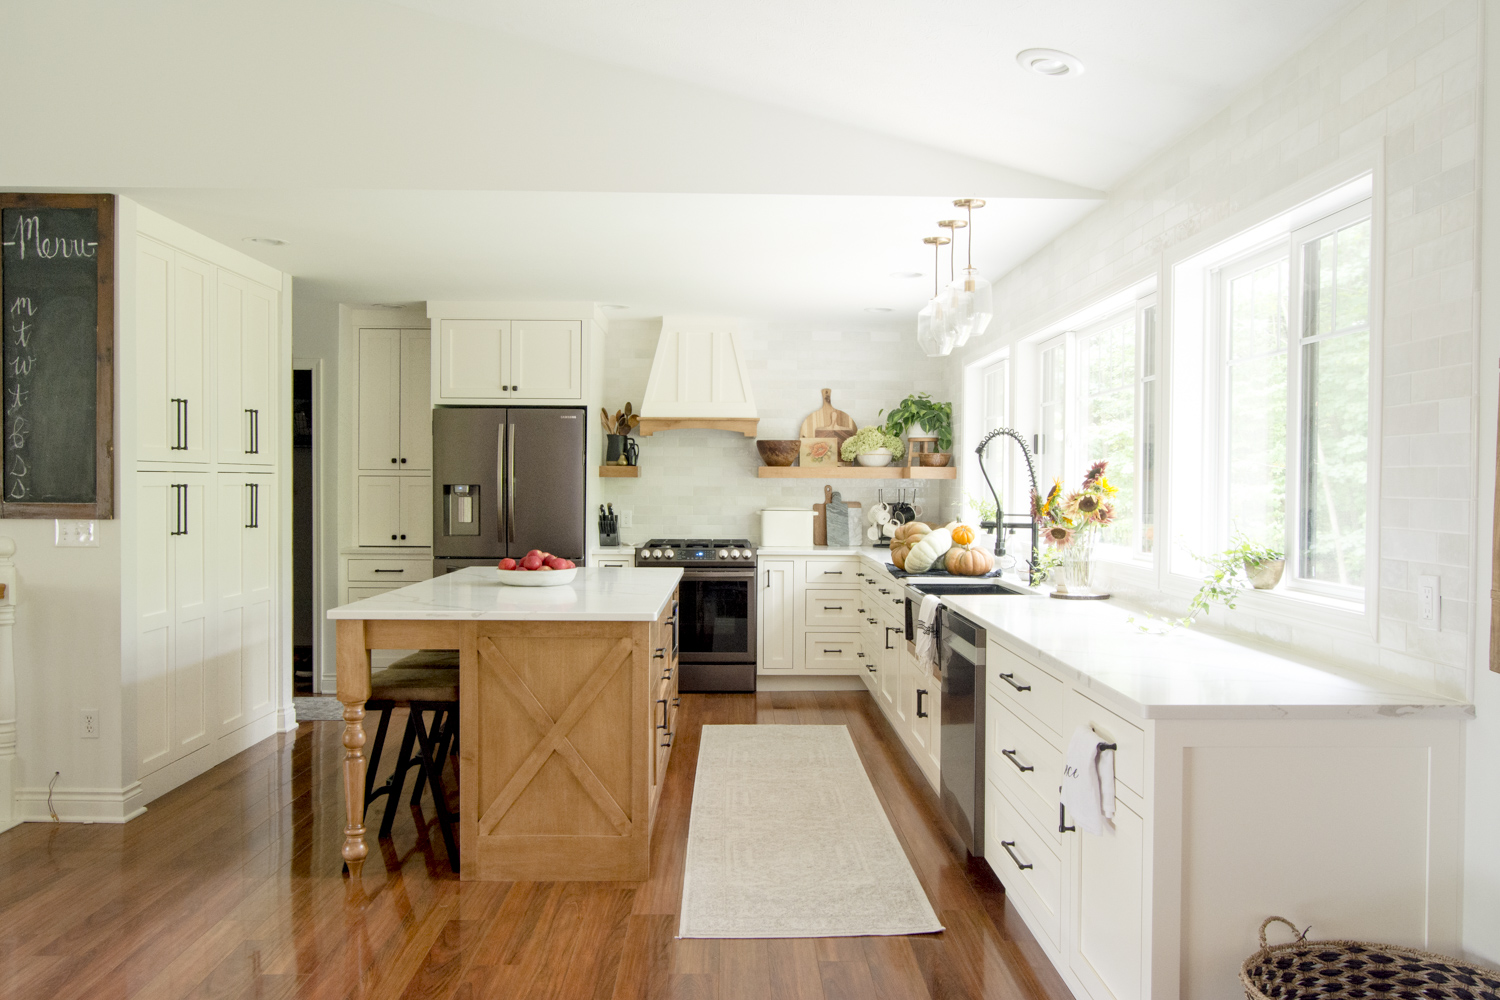 Beautifully renovated kitchen with white cabinets, huge windows and natural wood island kellyelko.com #kitchen #farmhousekitchen #kitchenreno #kitchendecor #kitchendesign #kitchenisland